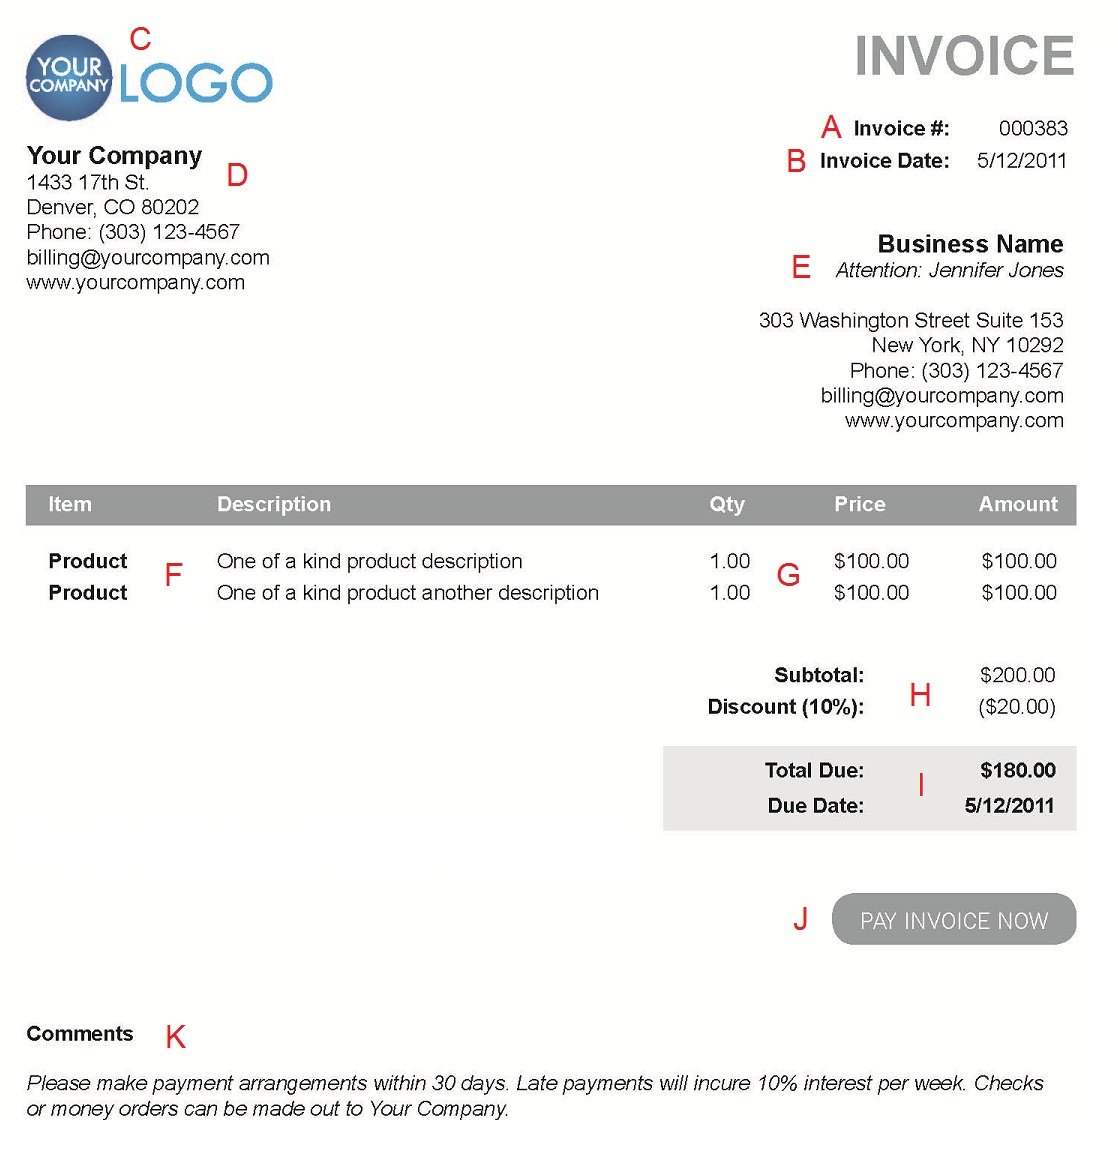 Sandiegolocksmithsus  Marvellous The  Different Sections Of An Electronic Payment Invoice With Great A  With Amusing Invoice Generator Software Free Also Invoice Software Online In Addition Aliexpress Invoice And Word Invoice Template  As Well As Invoicing Rules Additionally Incoming Invoices From Paysimplecom With Sandiegolocksmithsus  Great The  Different Sections Of An Electronic Payment Invoice With Amusing A  And Marvellous Invoice Generator Software Free Also Invoice Software Online In Addition Aliexpress Invoice From Paysimplecom